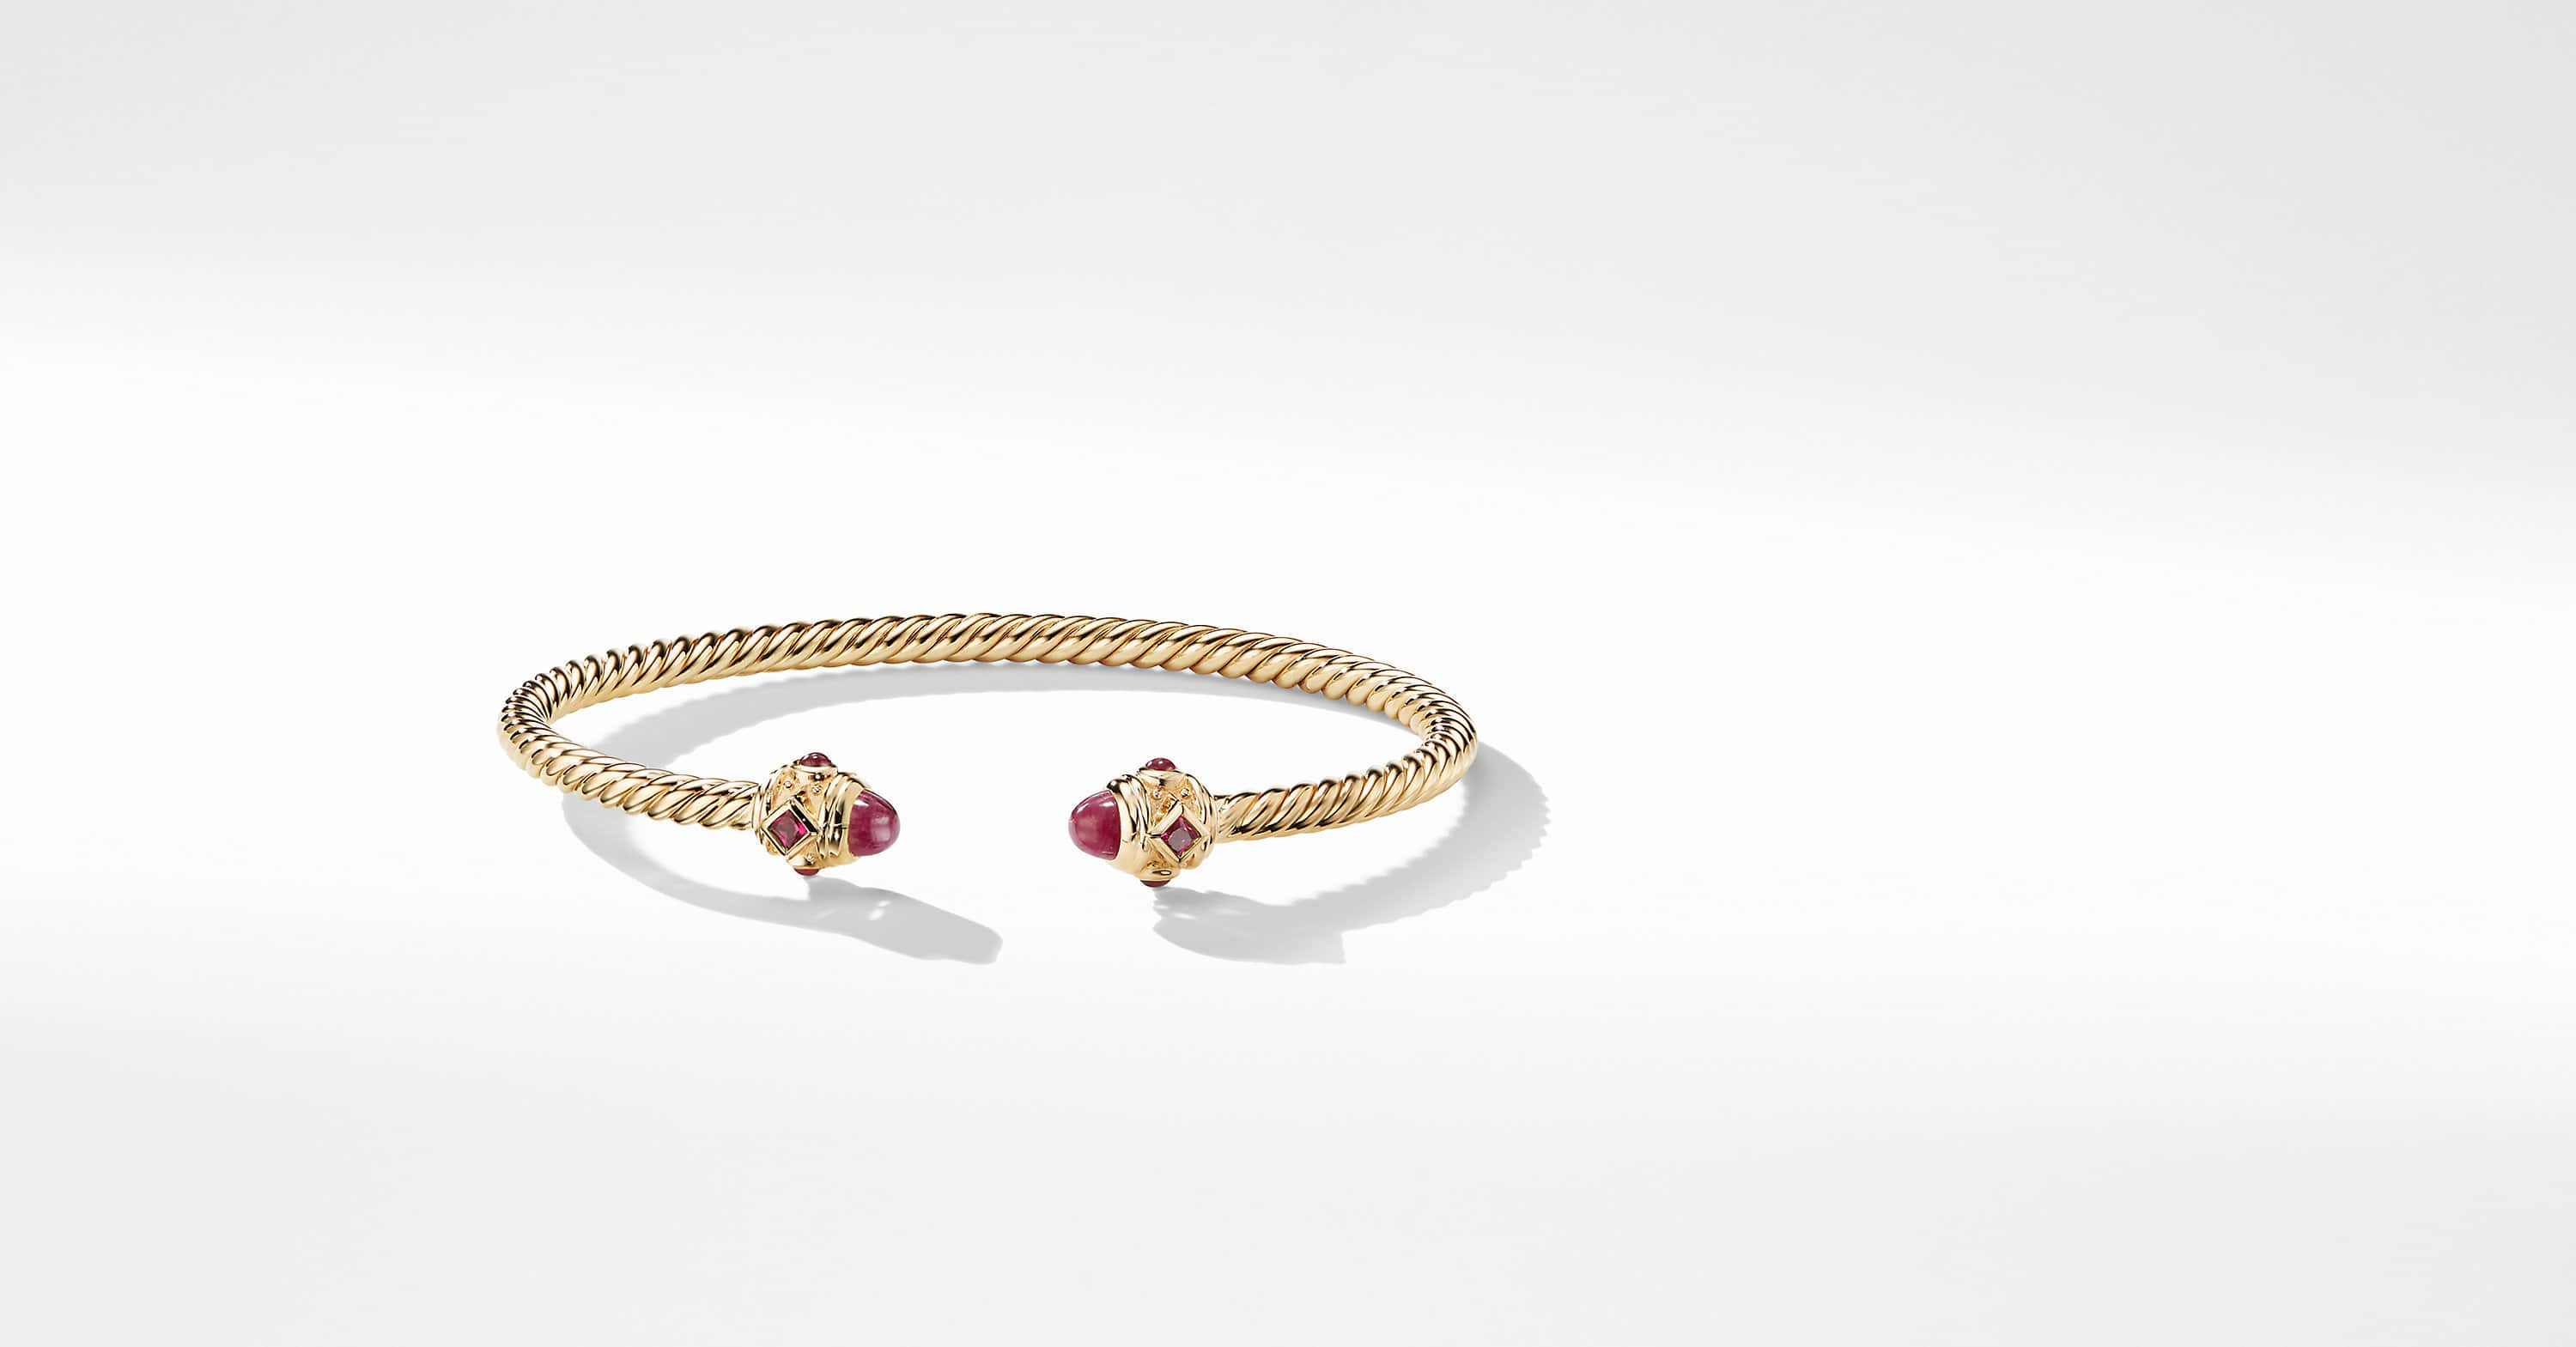 Renaissance Bracelet in 18K Gold, 3.5mm